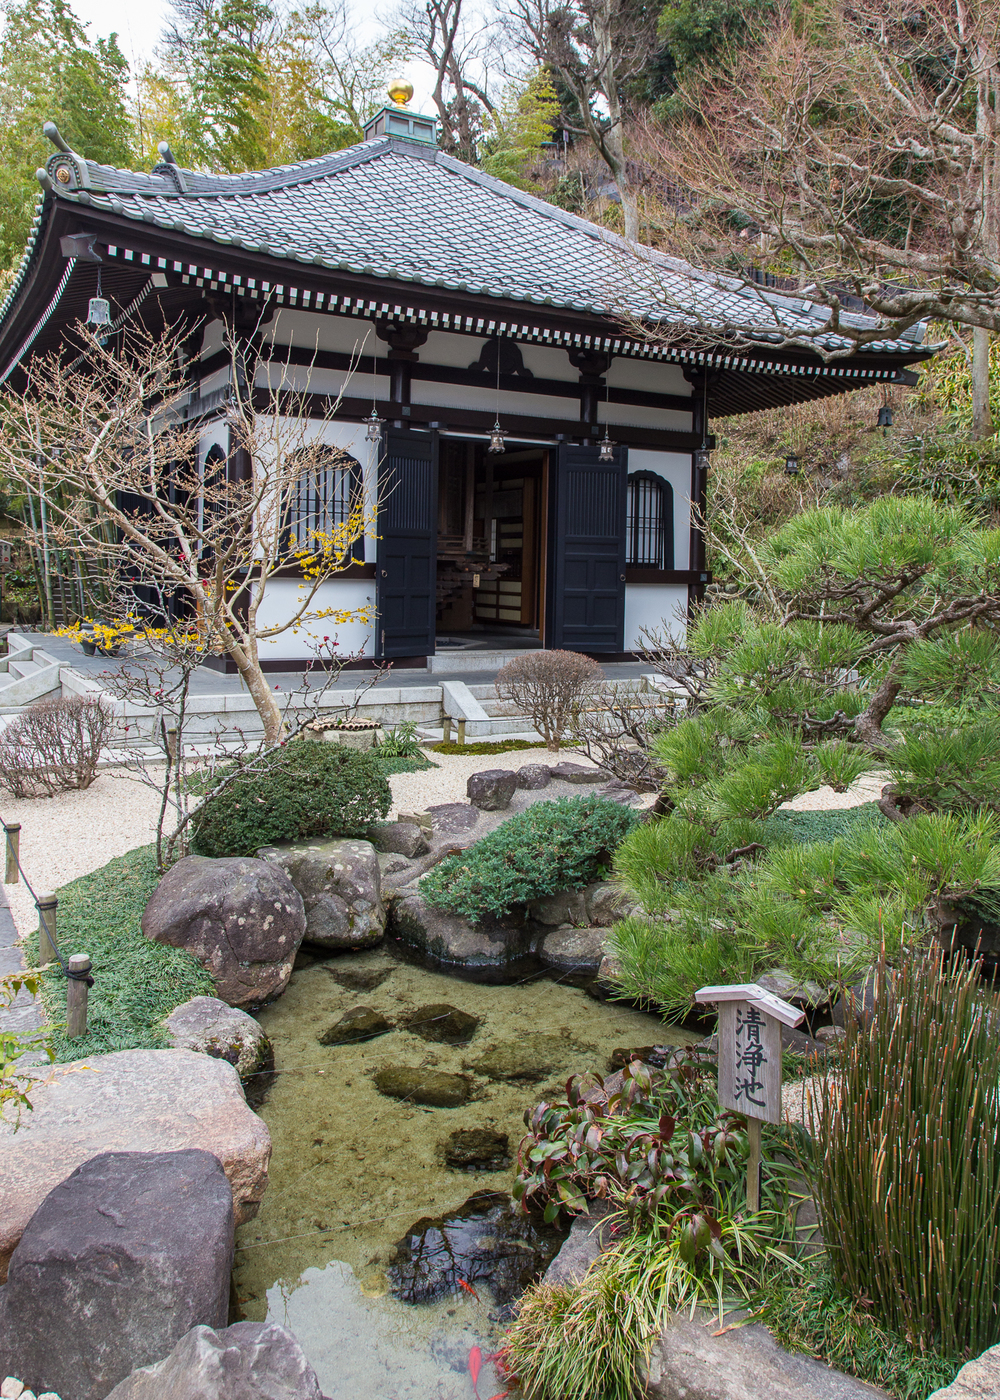 One of the small outbuildings at the Hasedera Temple